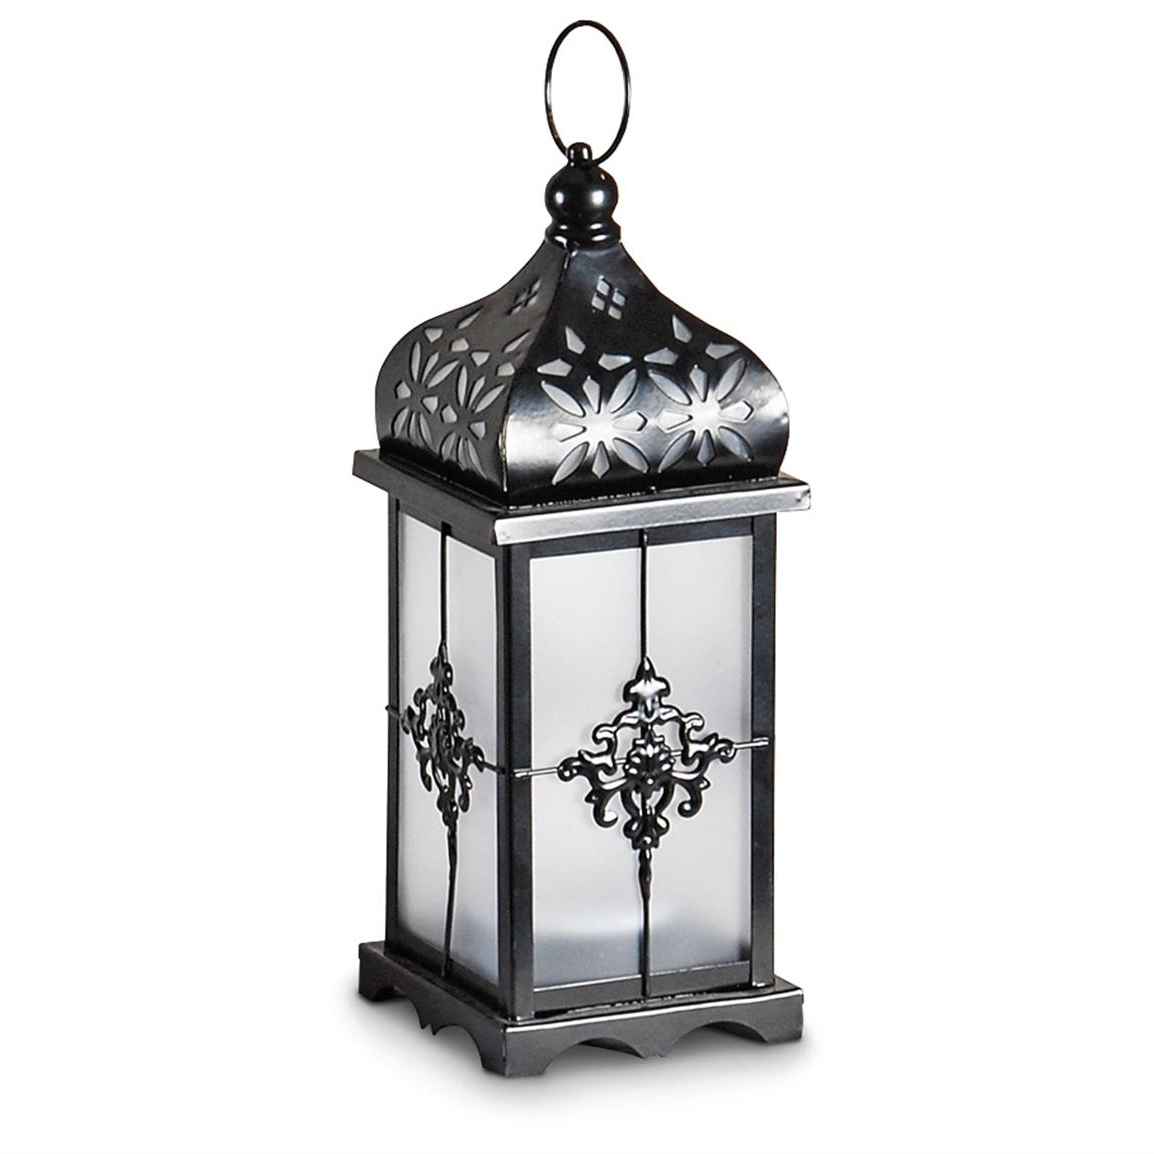 Outdoor Decorative Lanterns For Popular 2 Filigree Solar Lanterns – 232102, Solar & Outdoor Lighting At (View 10 of 20)